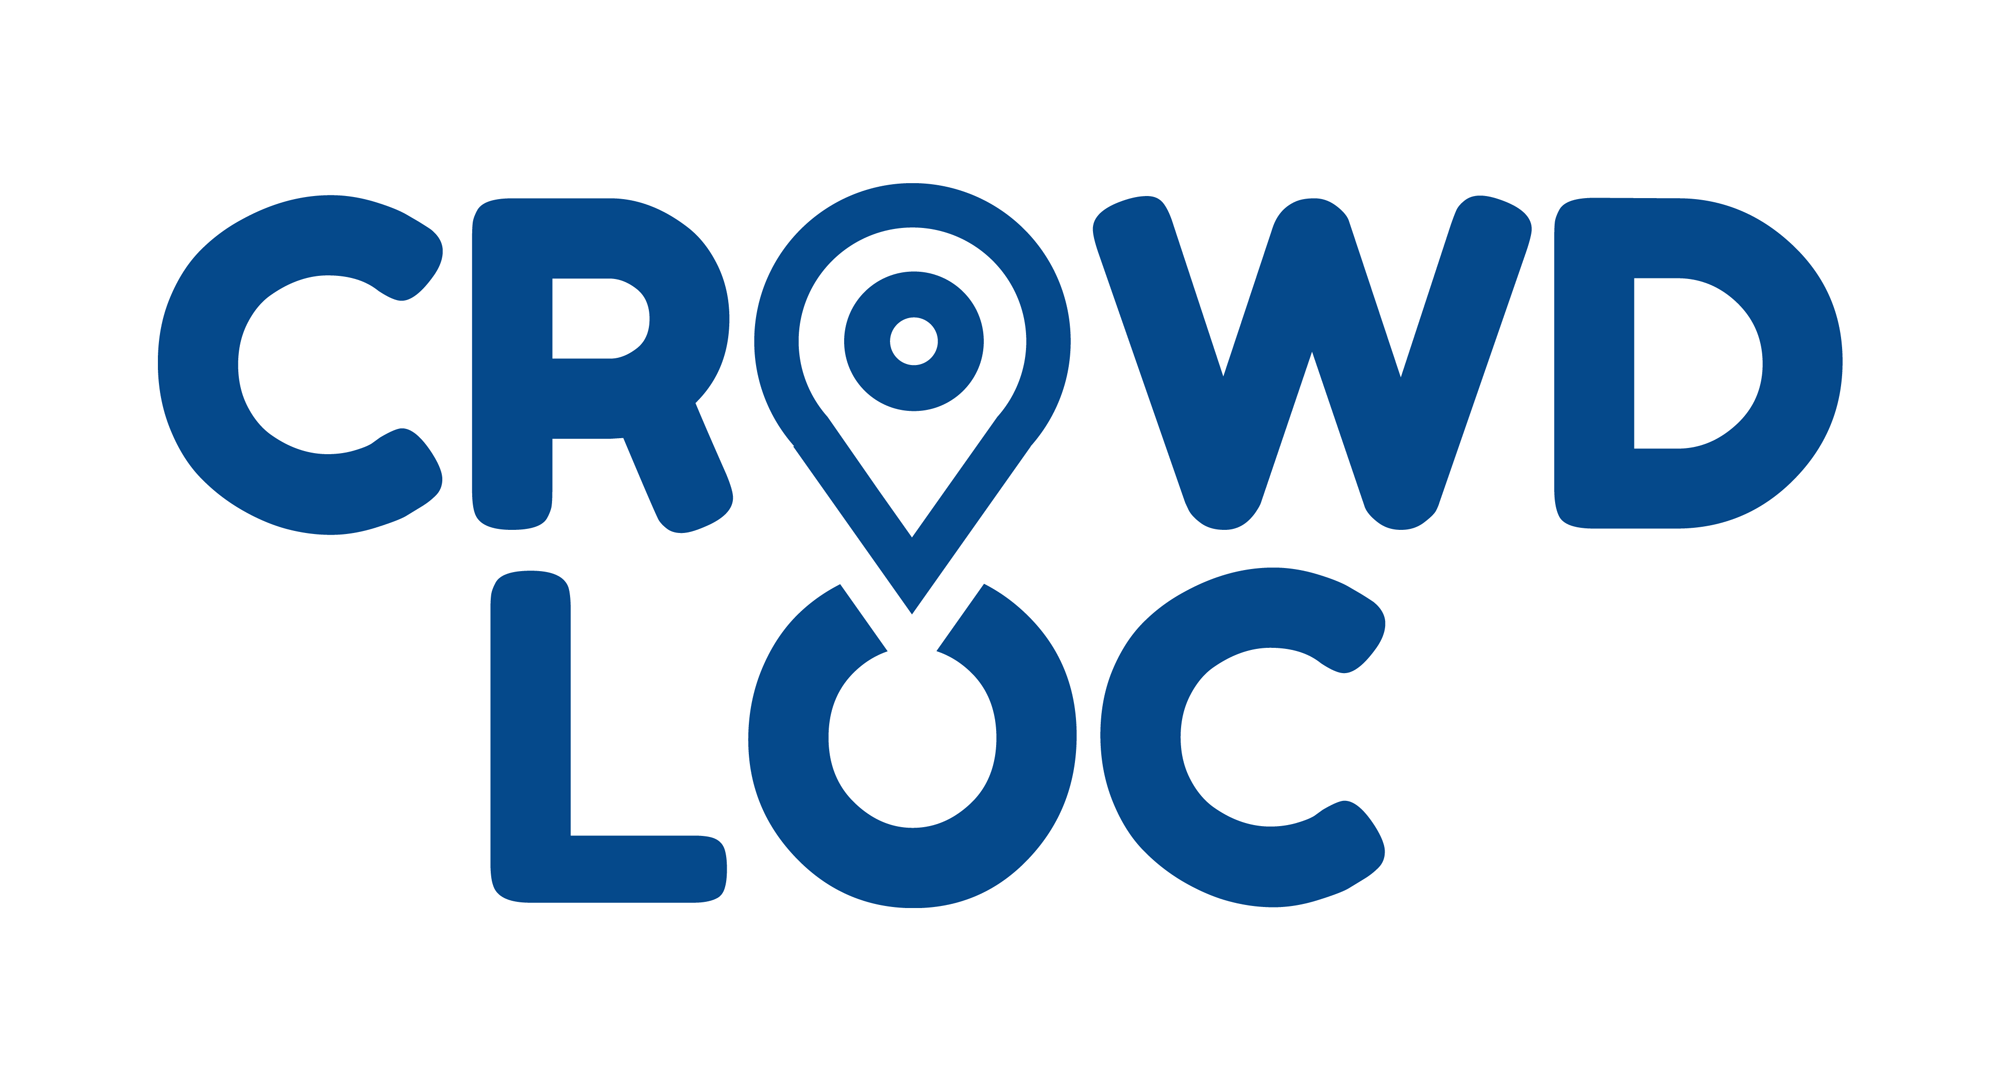 CROWDLOC-Logo-borders-2000x1085.png